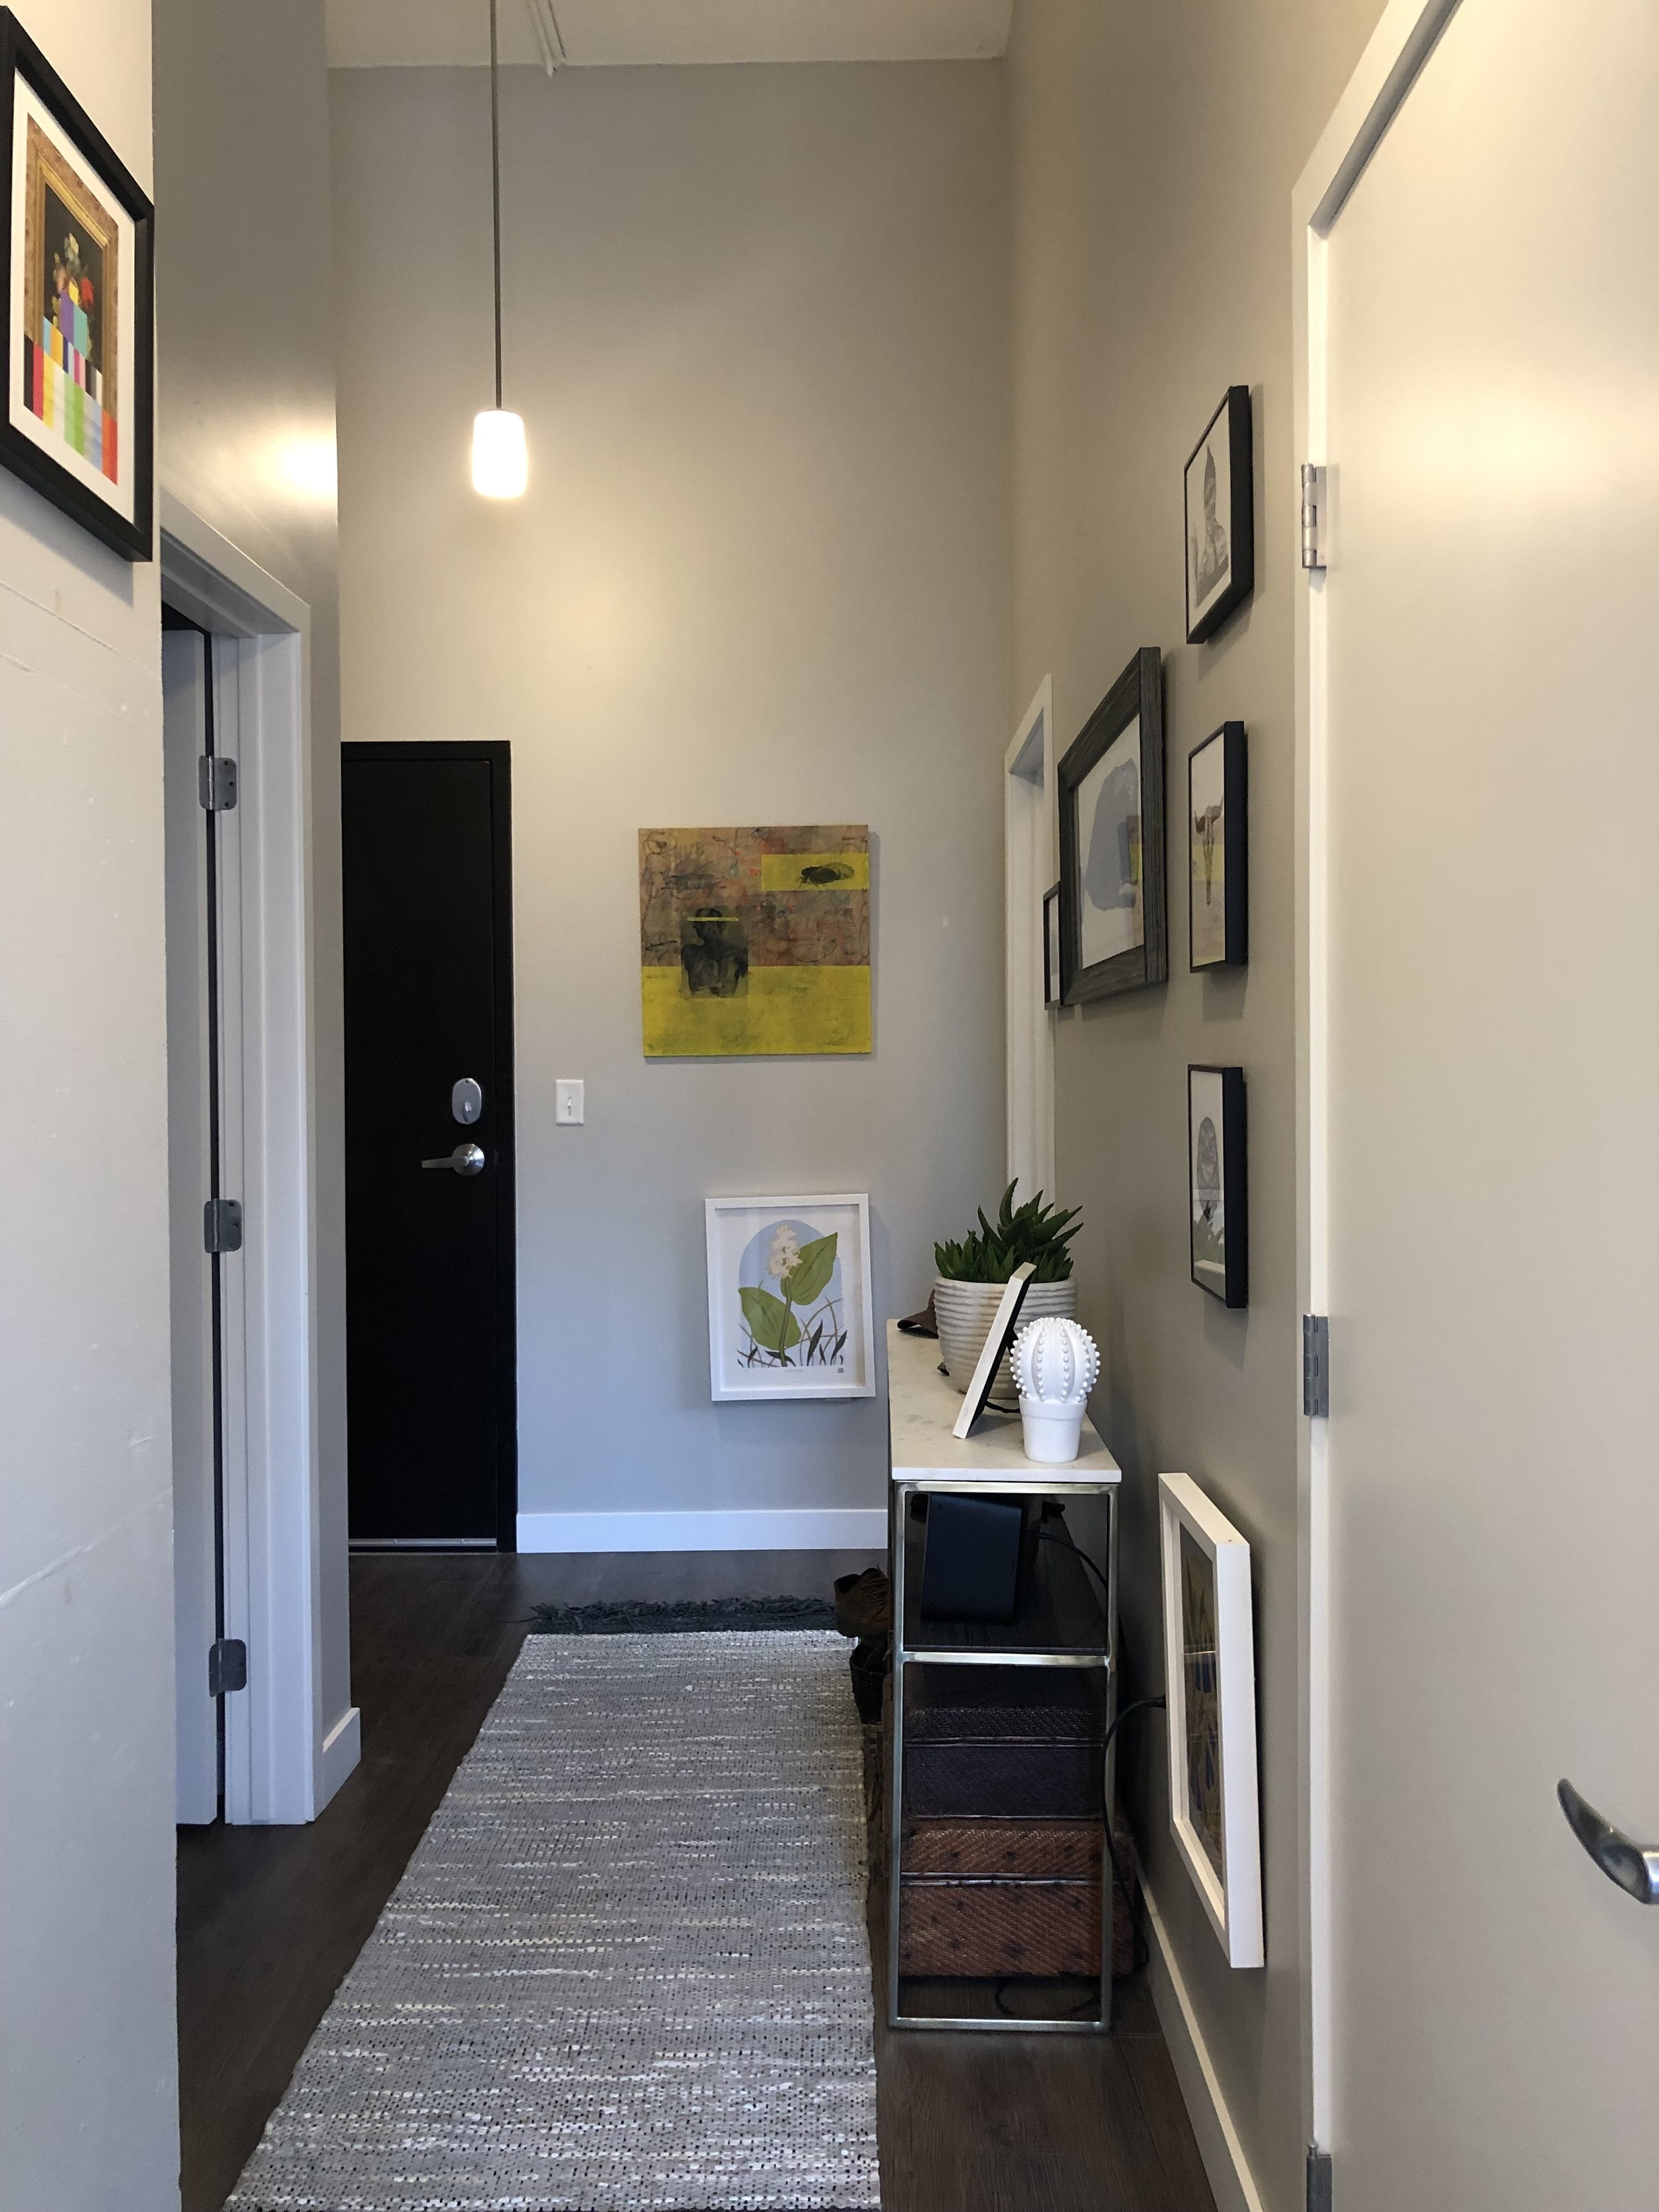 Flux Apartments - Des Moines, Iowa Before Styling by H.Prall and Co. Interior Decorating